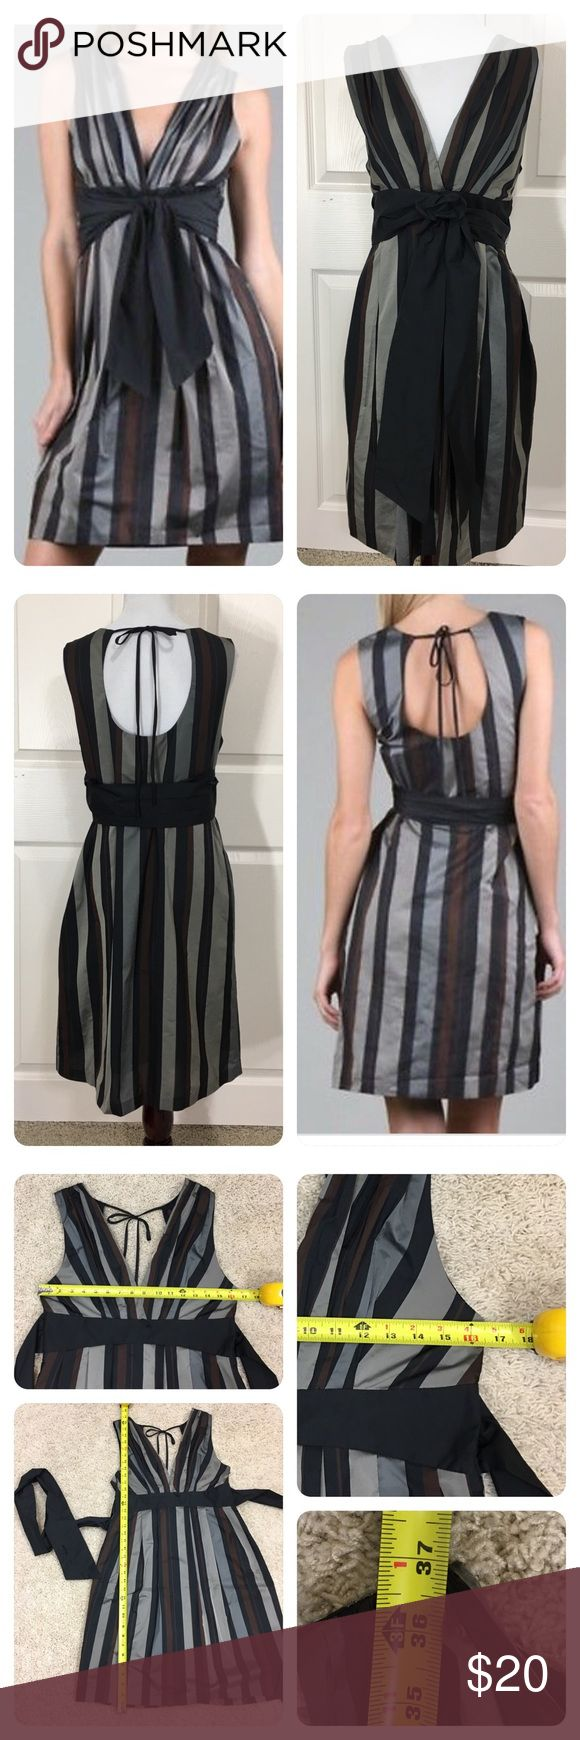 """Anthropologie Eva Franco Eva Franco Olivia Dress Eva Franco Womens Olivia Dress in Gypsy Stripe From Anthropologic   Wrap Around Belt . Gray, black and brown stripe. Tiny mark on """"v"""" bustline and small tear on wrap around belt ( can't see if tied right.) price reduced. Anthropologie Dresses"""